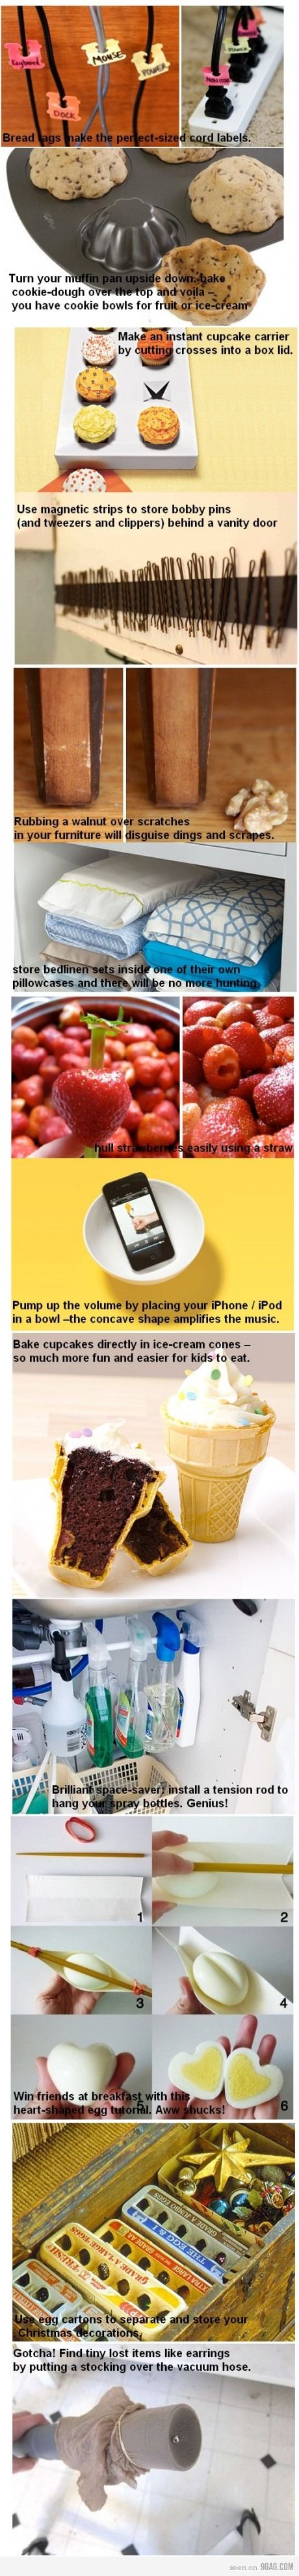 Clever ideas to make life easier!